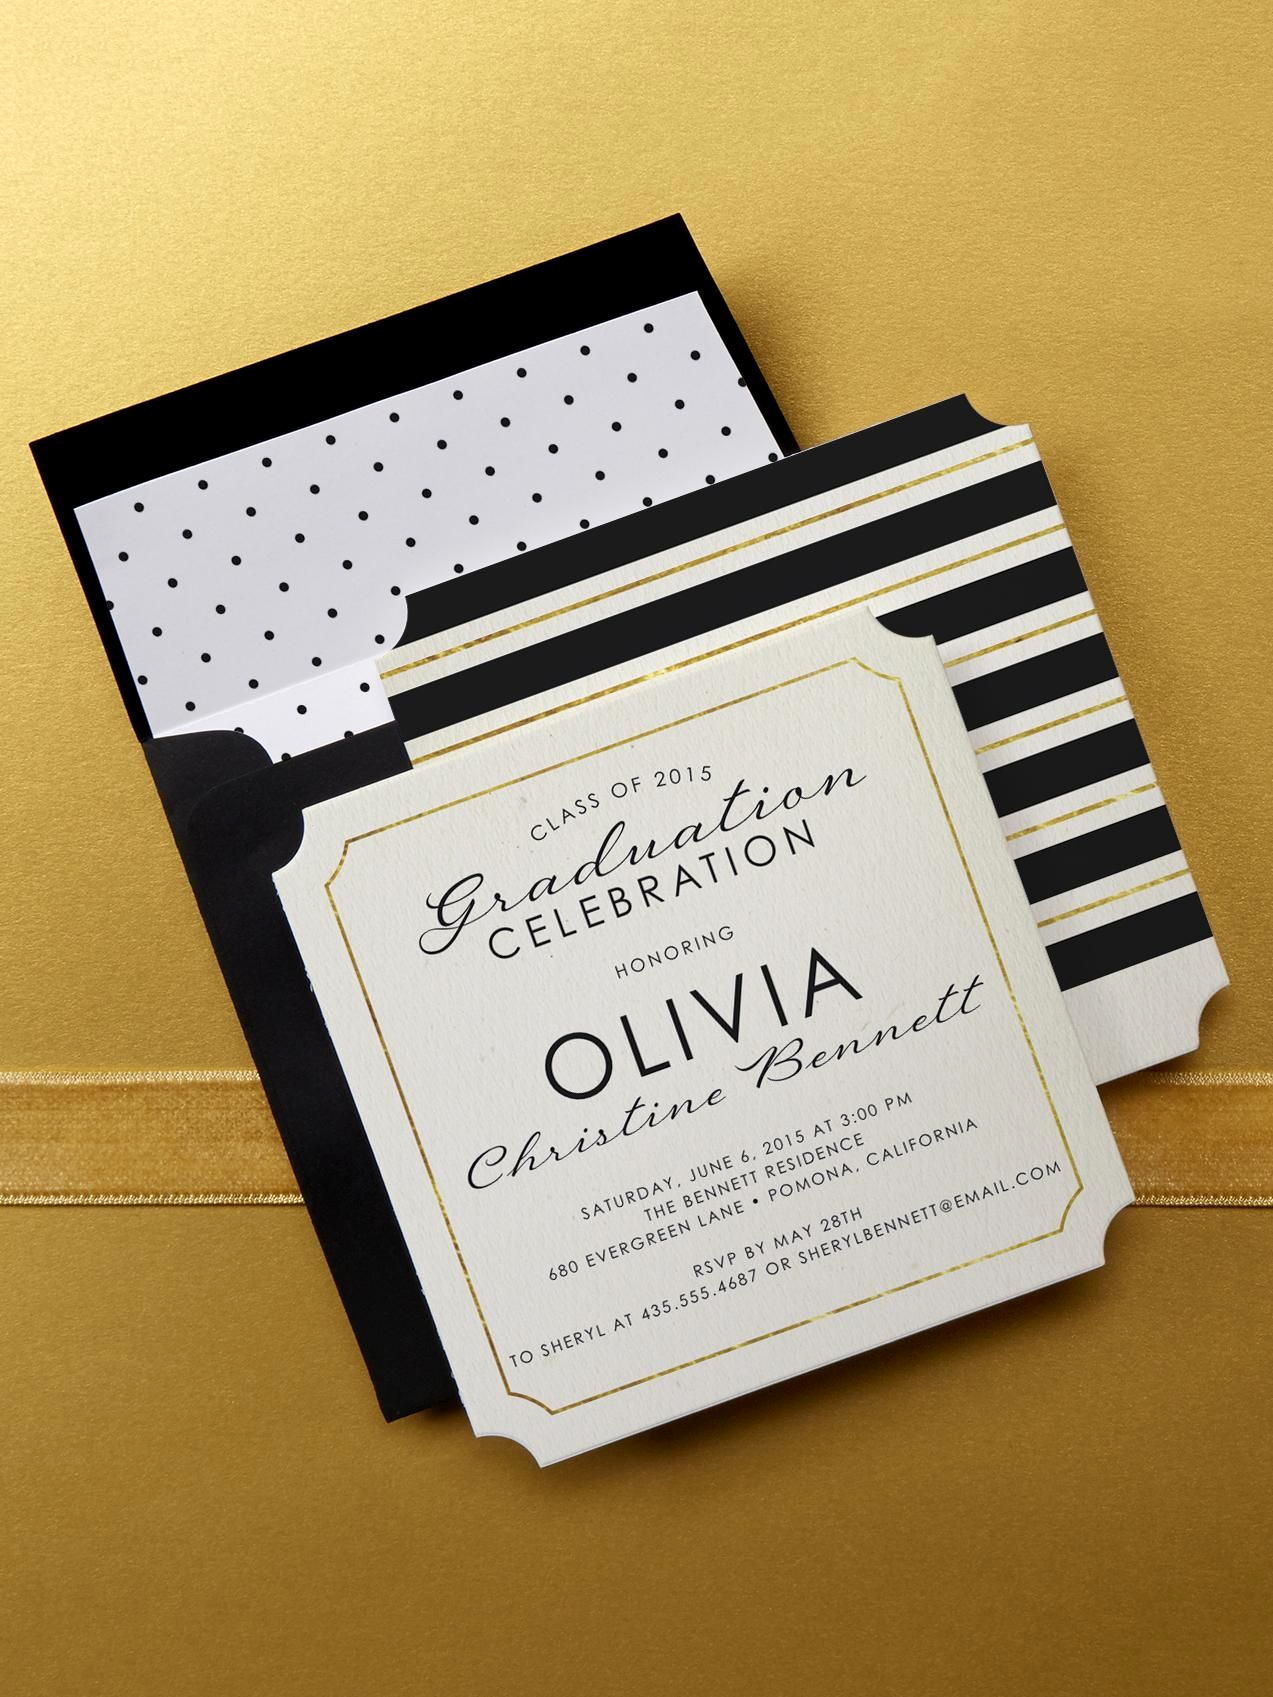 Graduation Invitation Ideas Homemade Luxury Choose A Linen Graduation Invitation Design at Tiny Prints